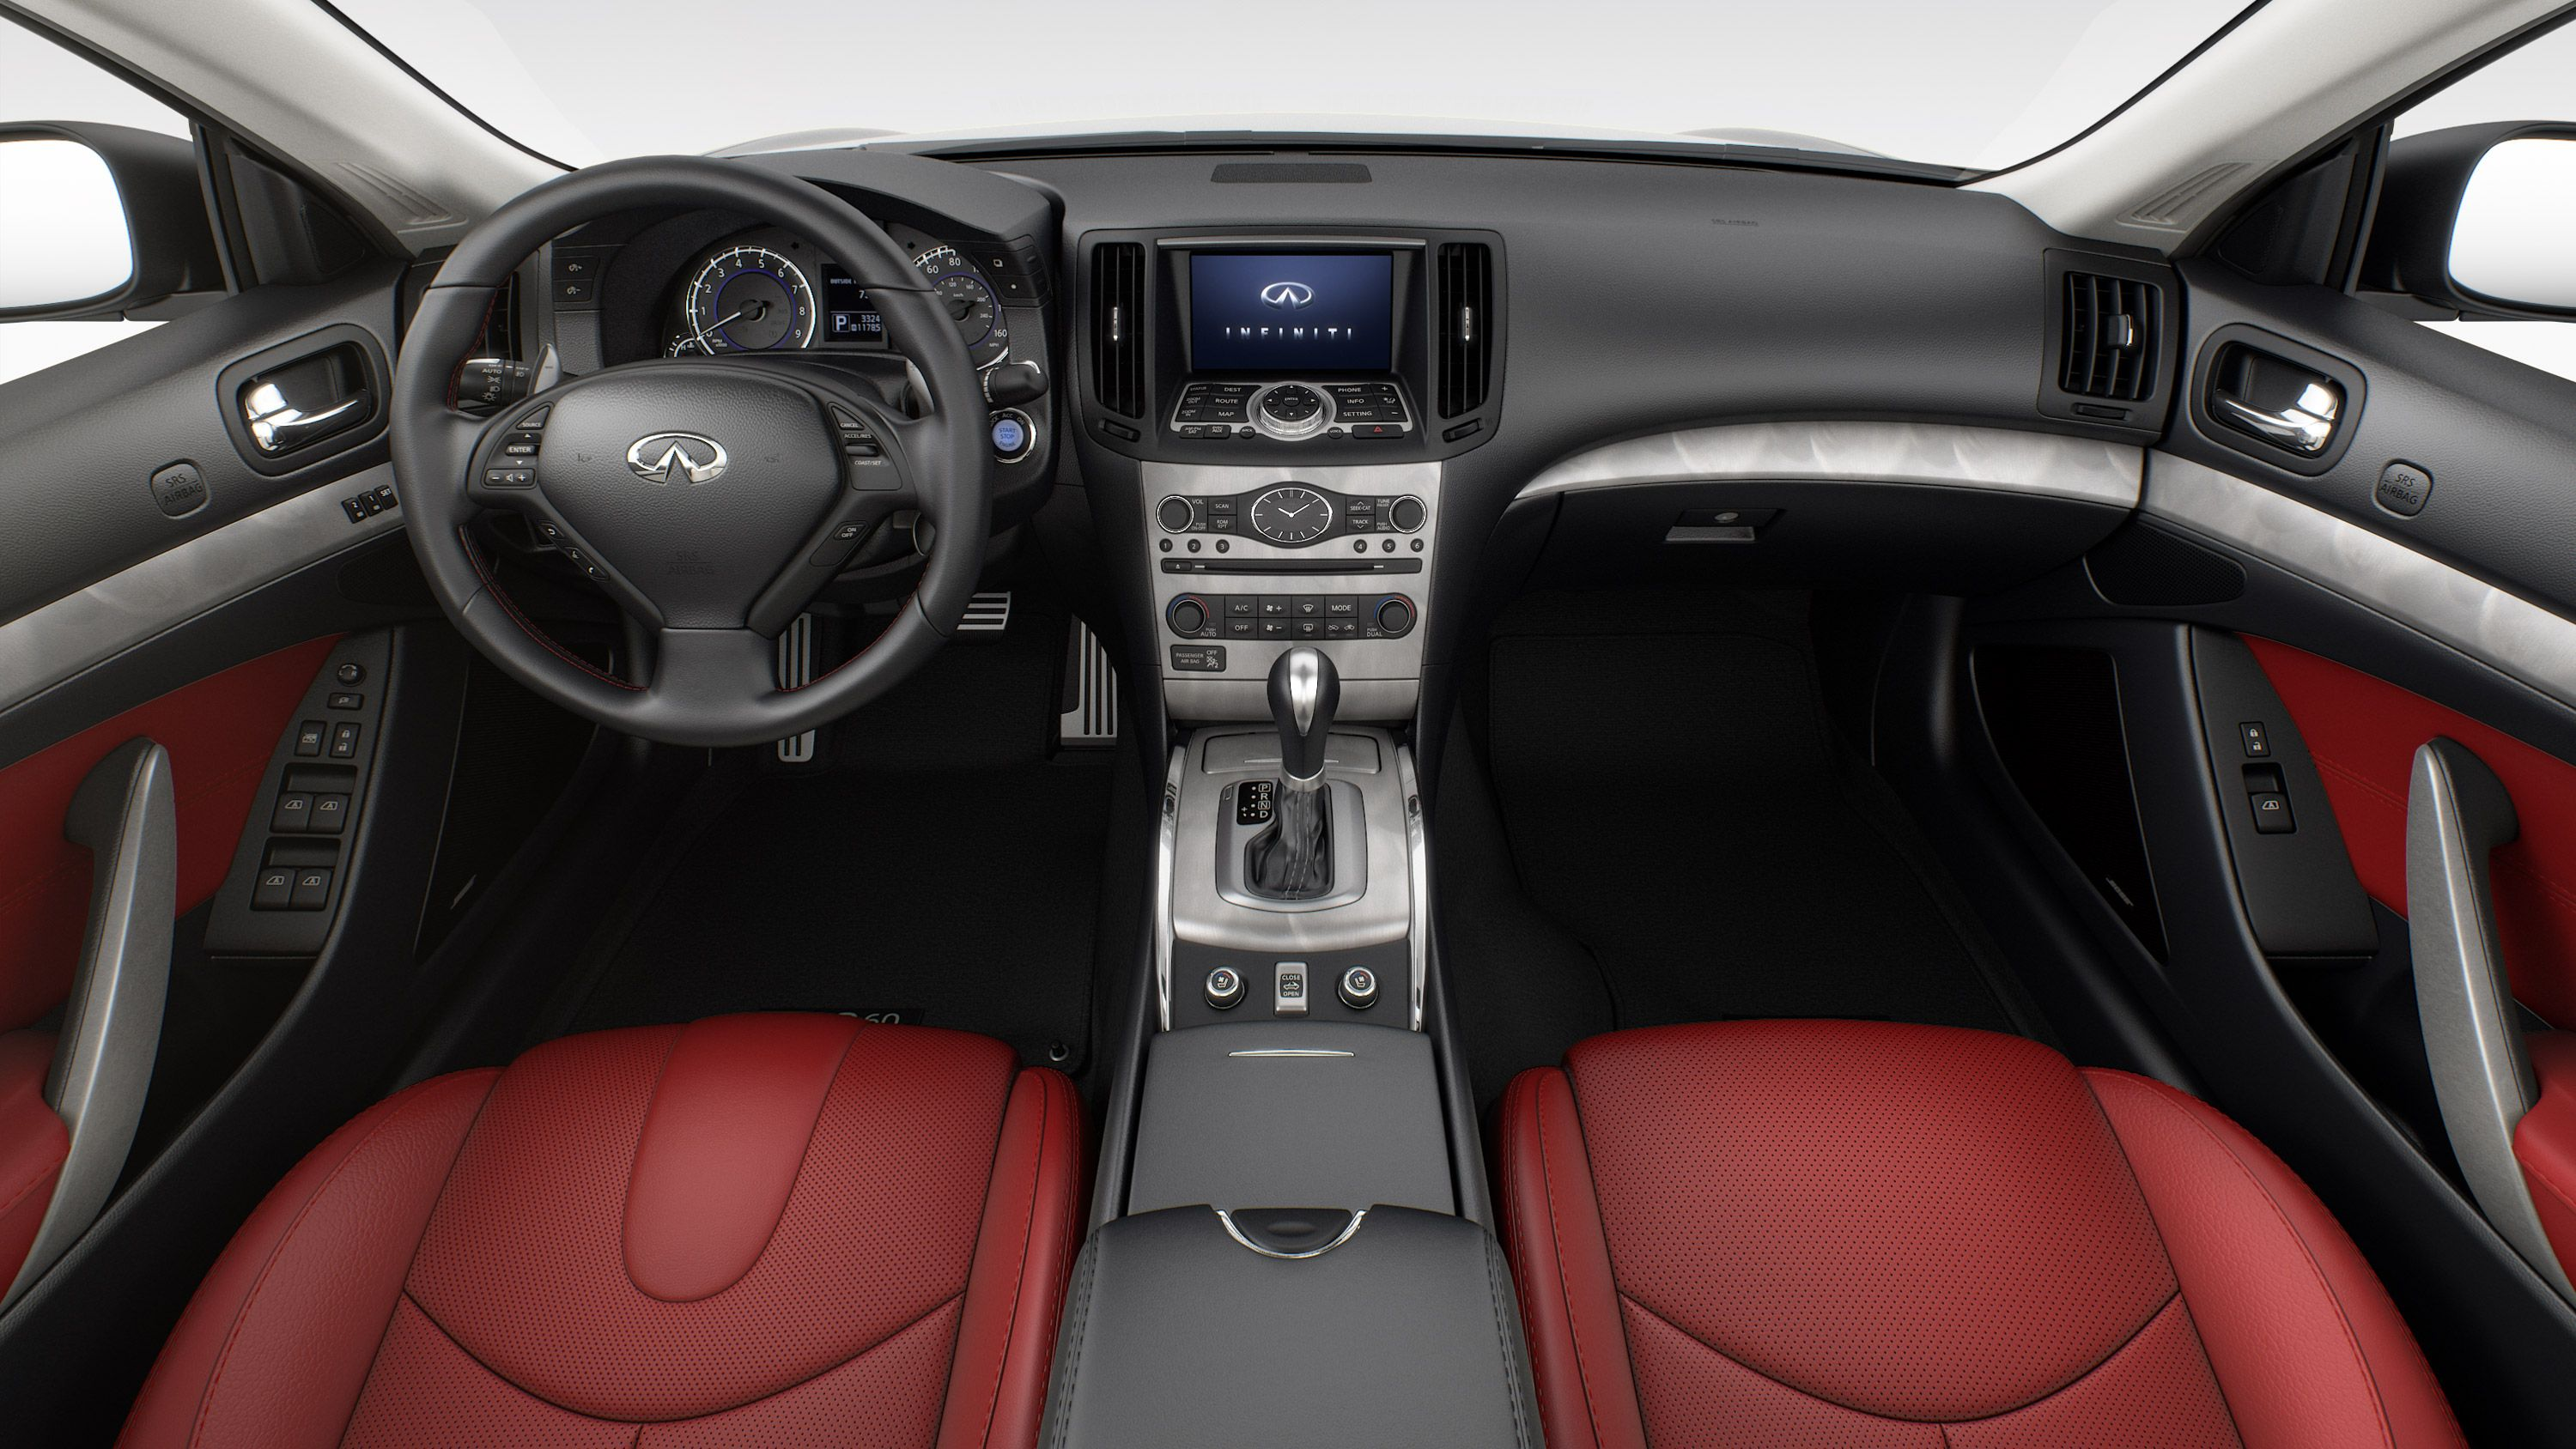 View Exterior And Interior Images Color Options And Videos Of The 2015 Infiniti Q60 Ipl